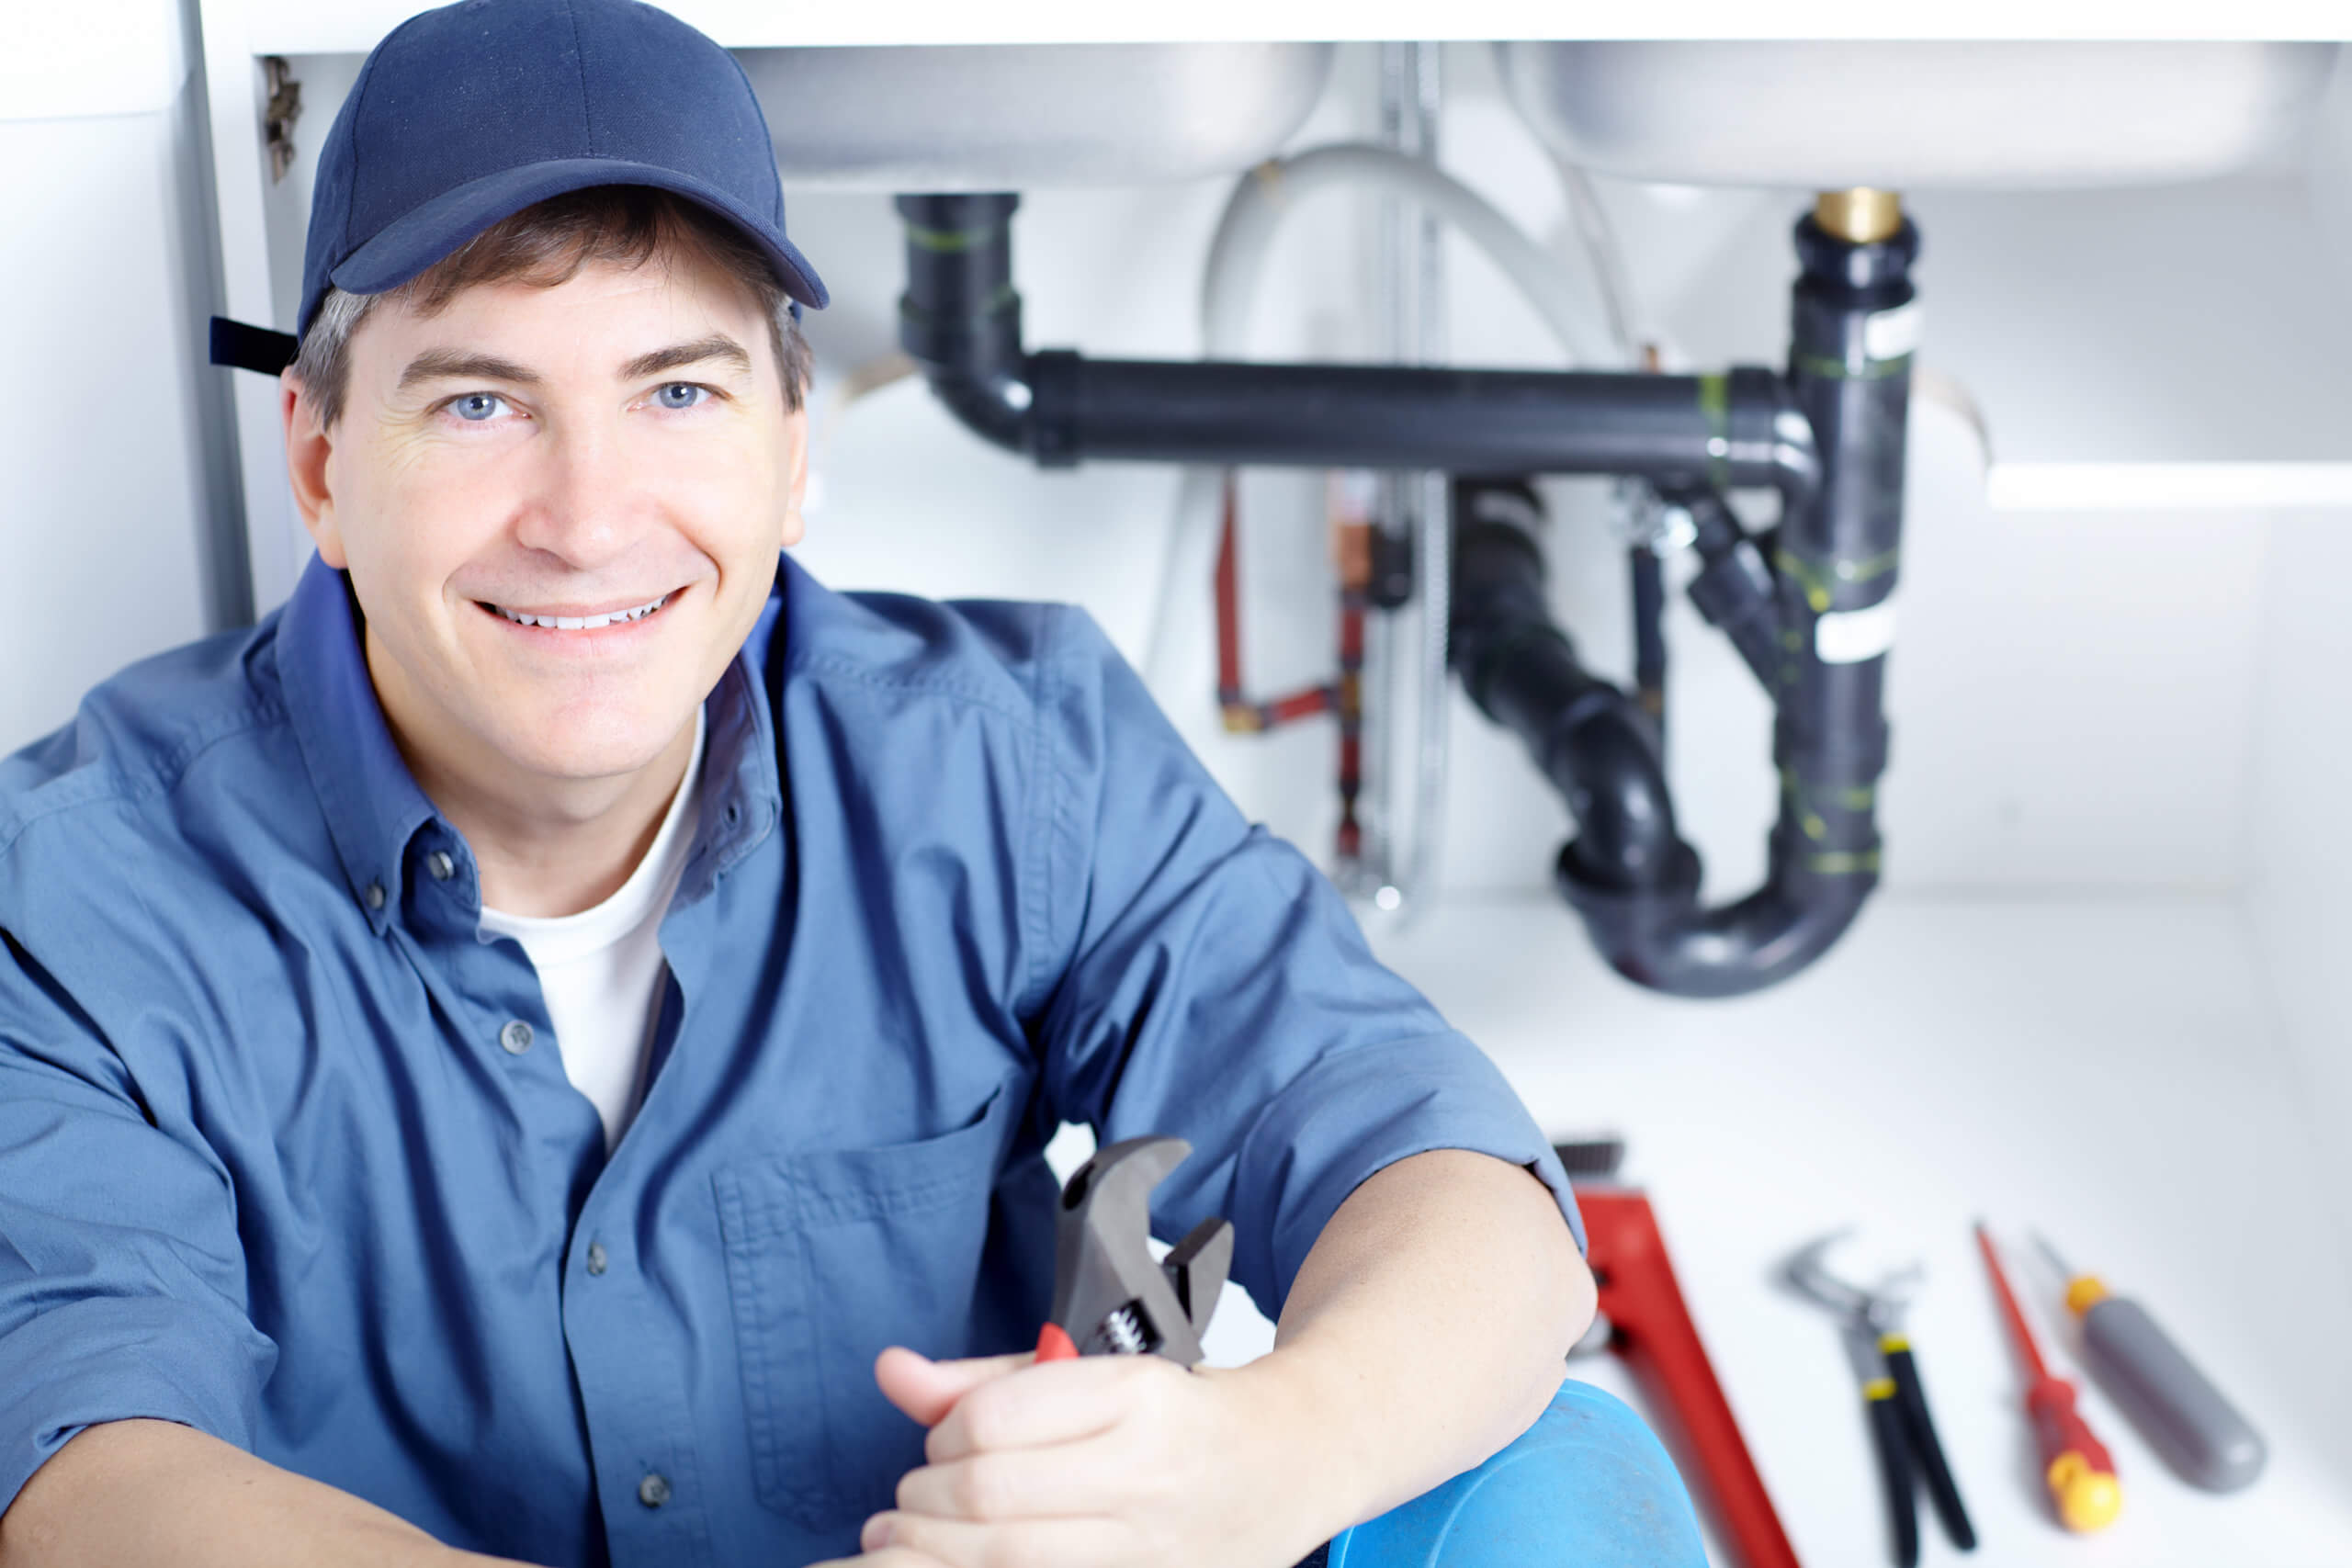 jet rodding in addison, IL by Quality Plumbing Services